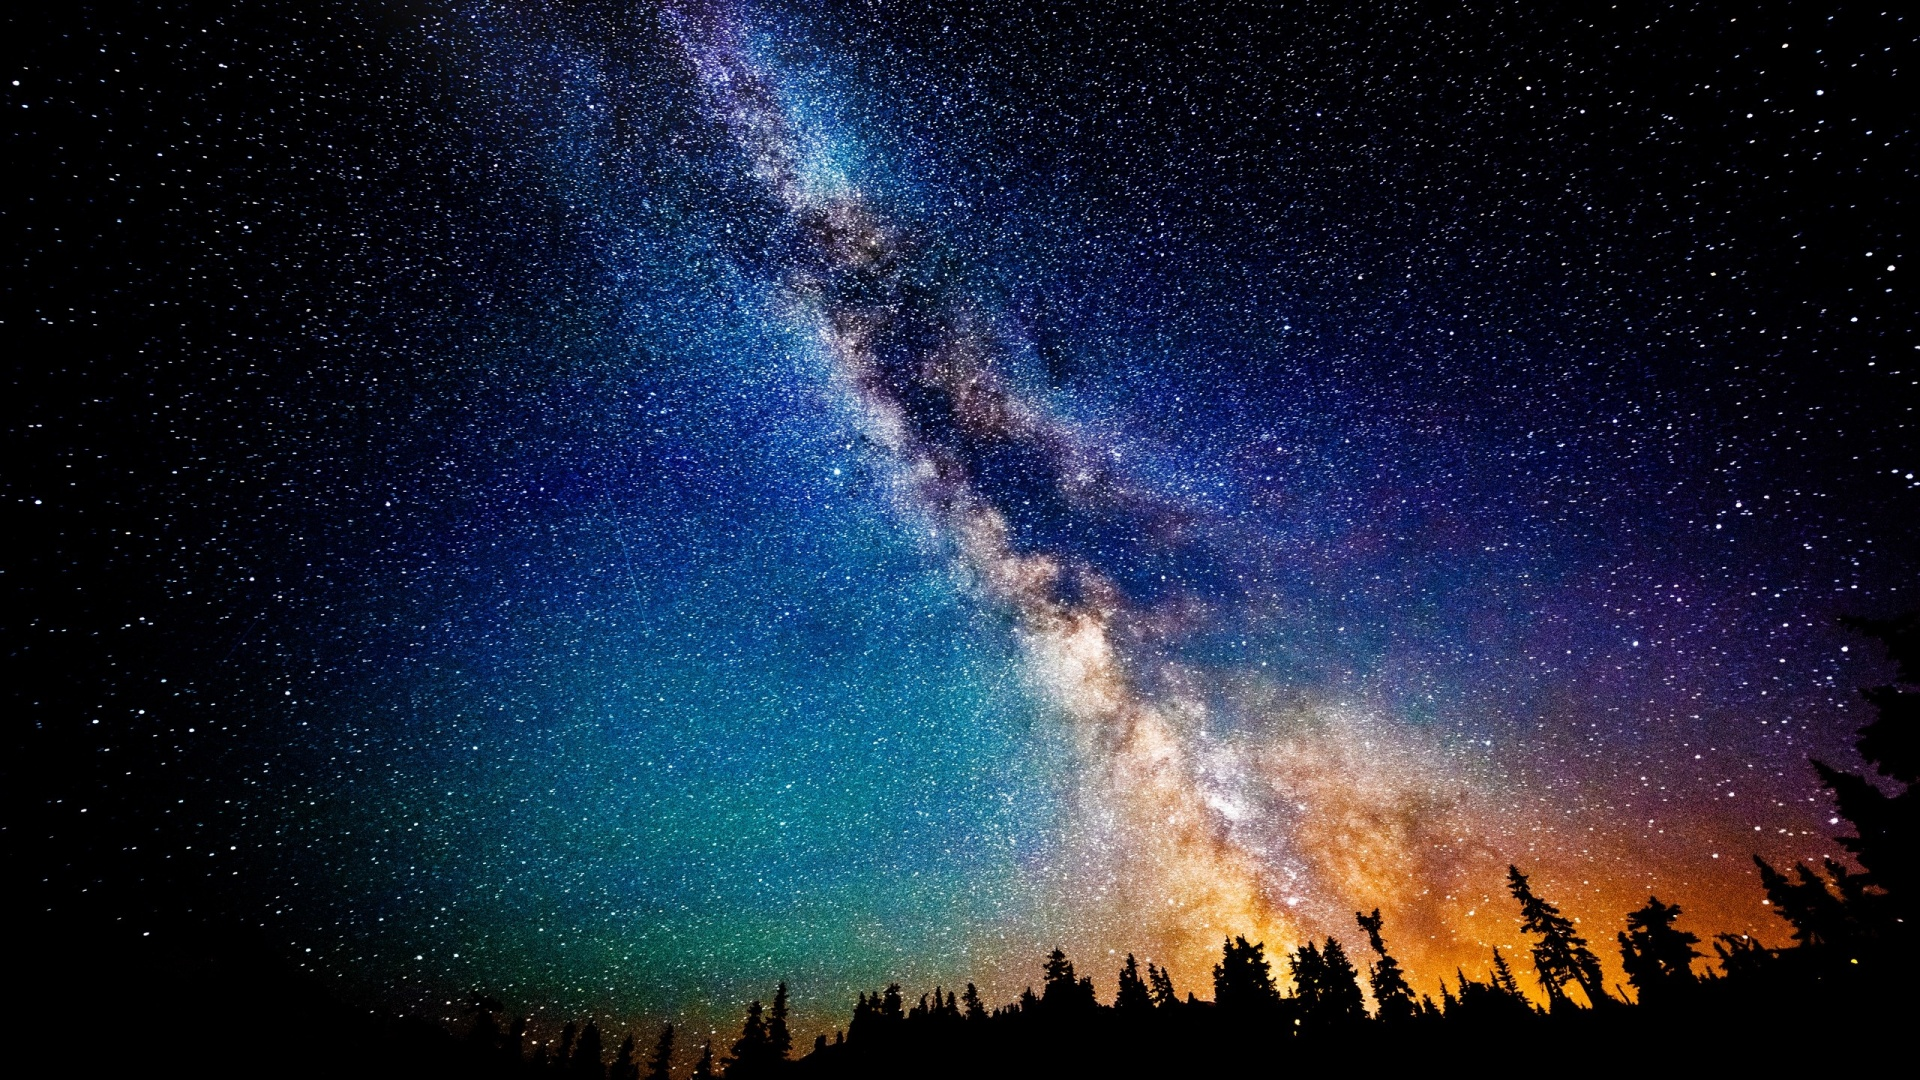 1920x1080 The Milky Way at Night desktop PC and Mac wallpaper 1920x1080